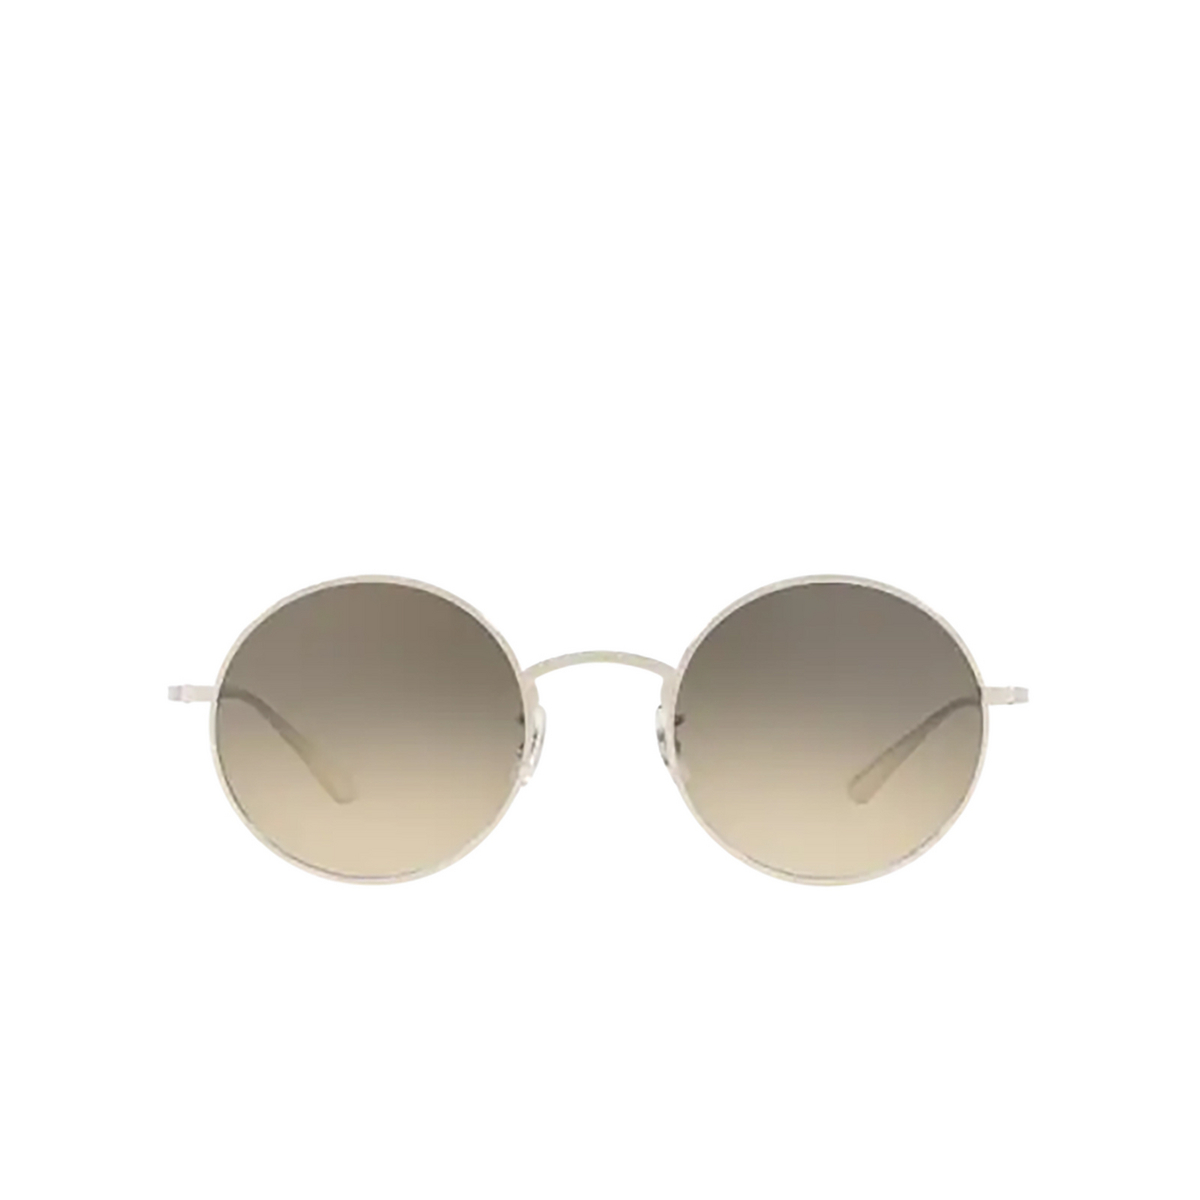 Oliver Peoples® Round Sunglasses: After Midnight OV1197ST color Silver 503632.